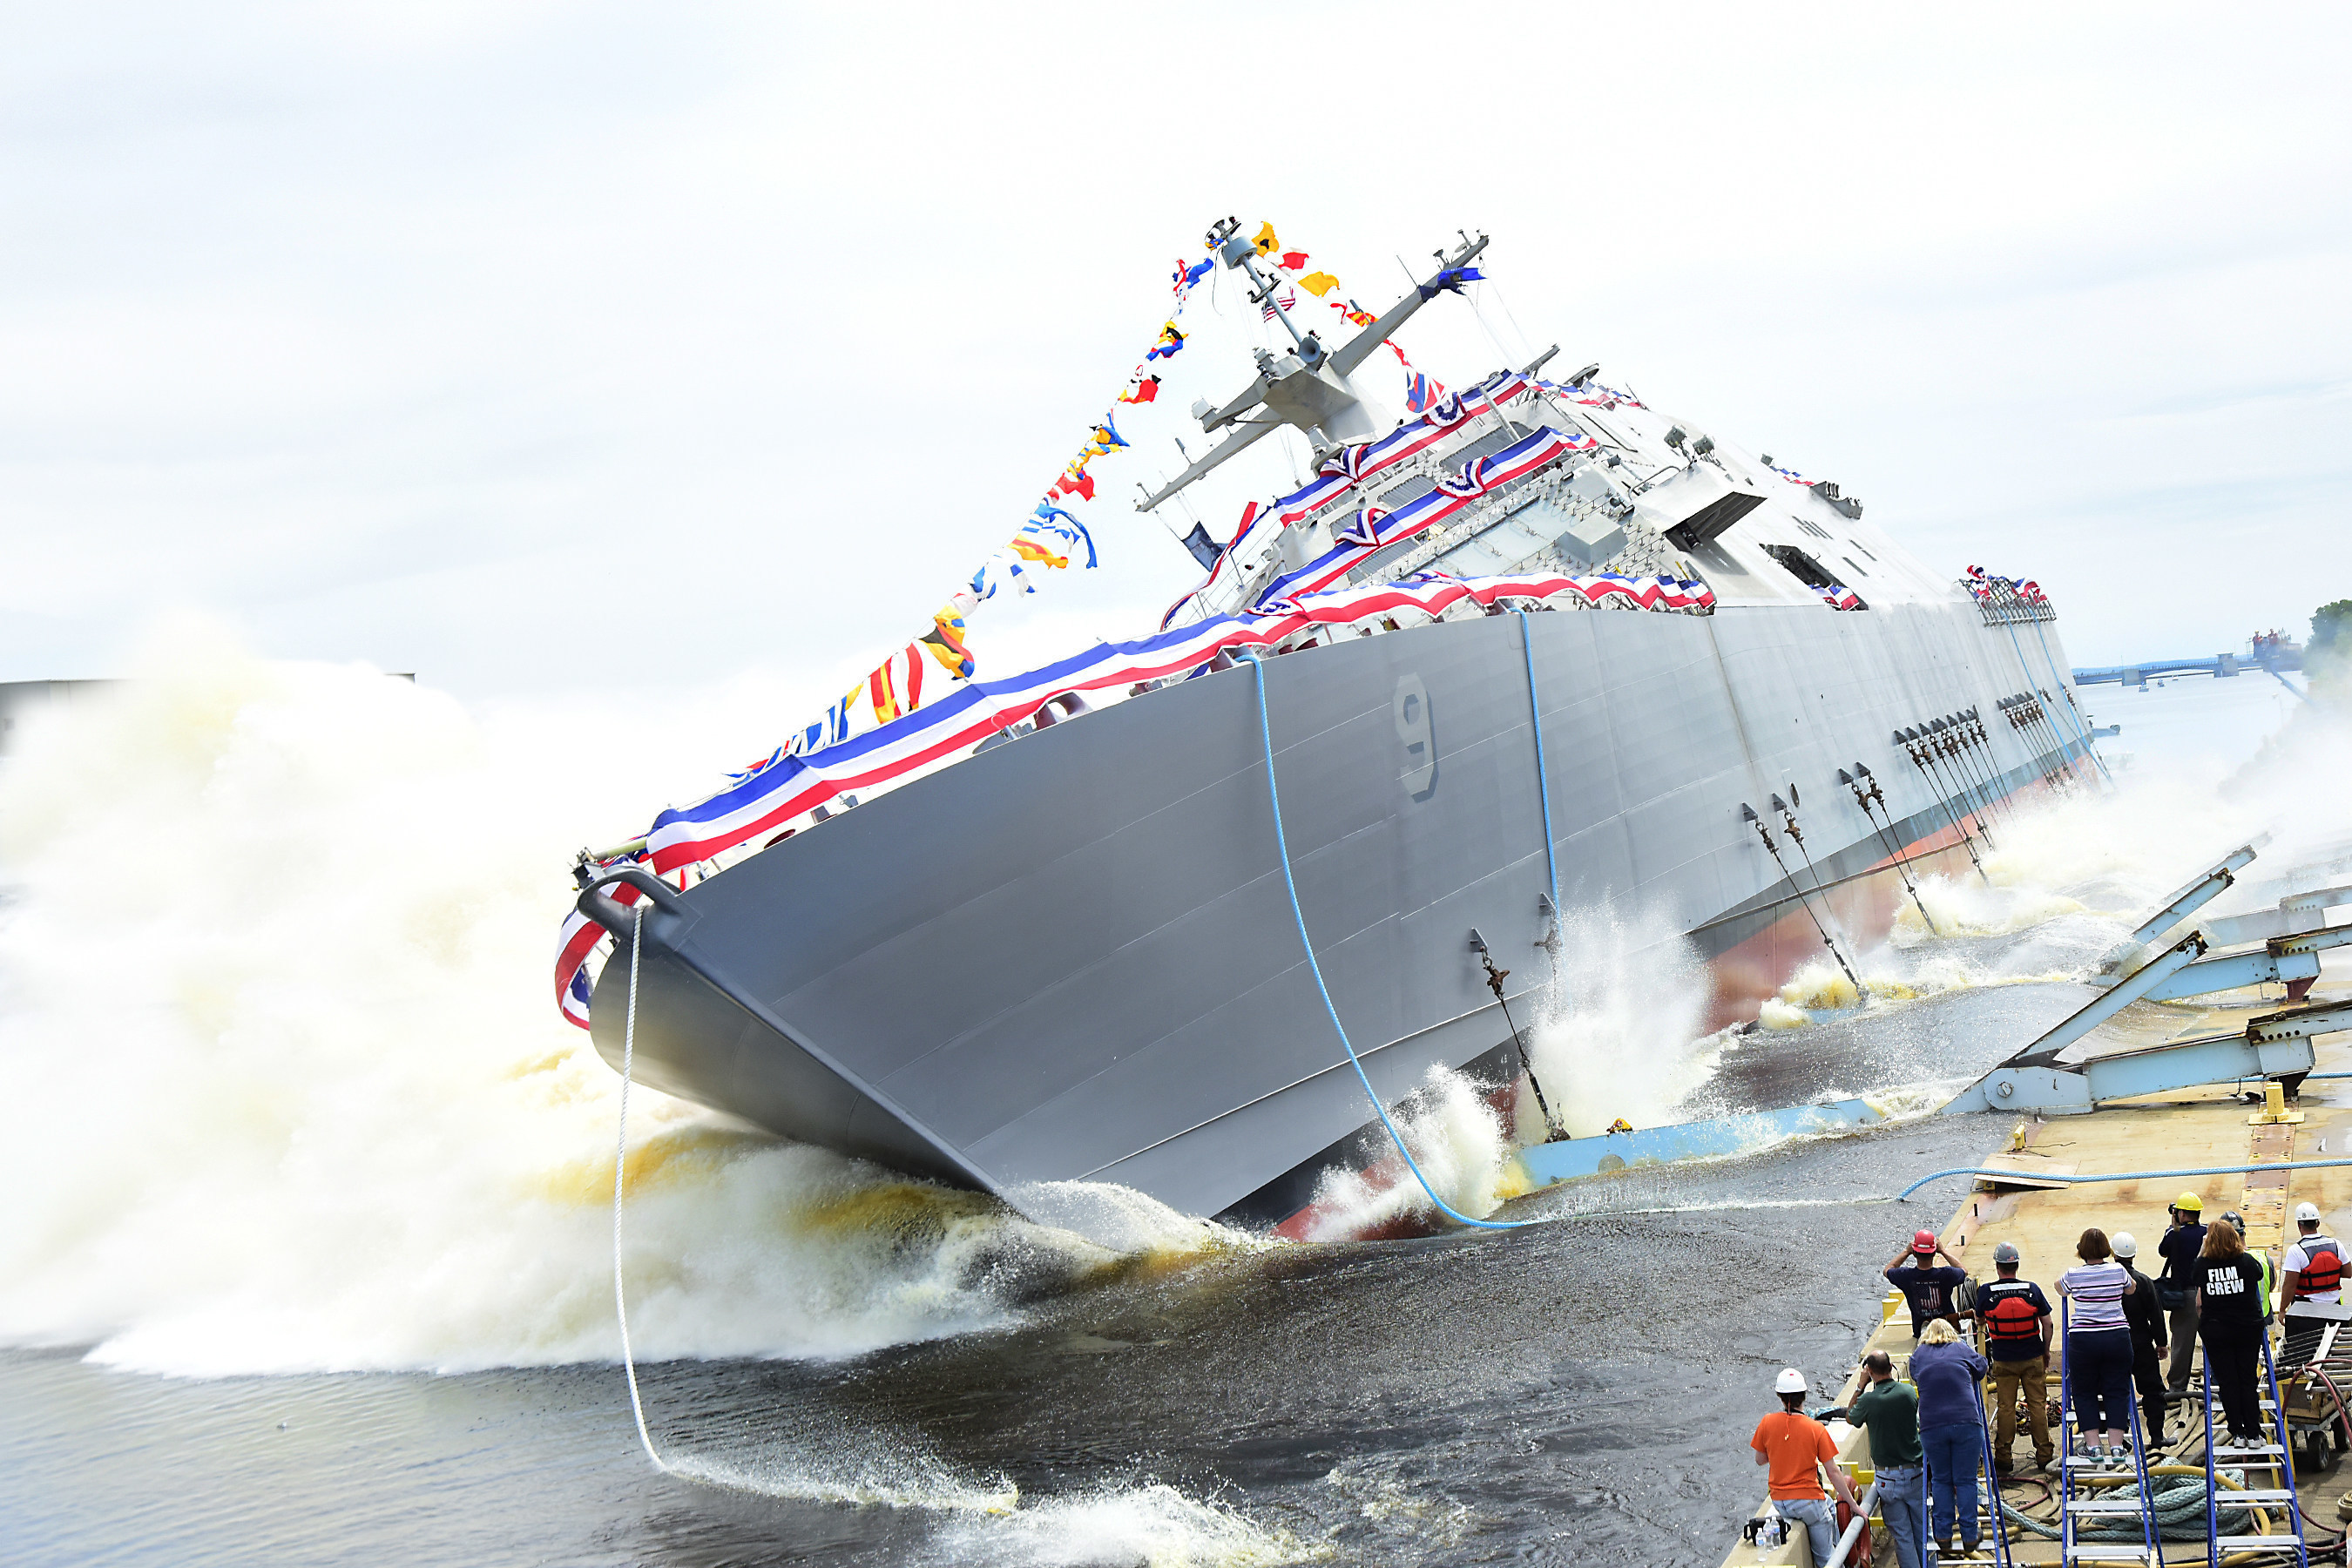 The ninth littoral combat ship, the future USS Little Rock, was christened and launched into the Menominee River in Marinette, Wisconsin, on July 18. Ship sponsor Mrs. Janee Bonner officially christened the ship by smashing a bottle of champagne across the bow.